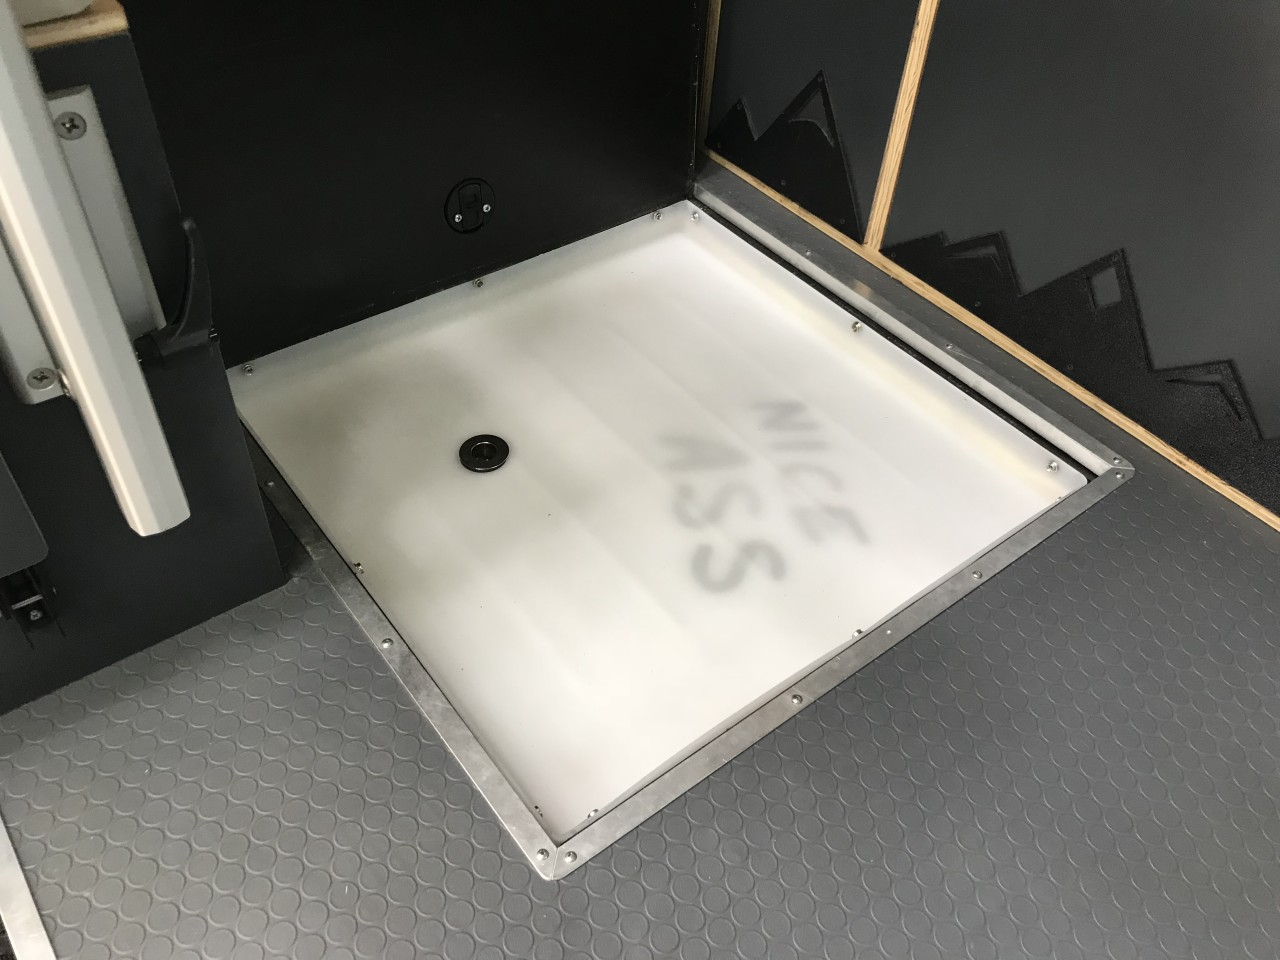 Lift away the access panel and reveal the shower floor